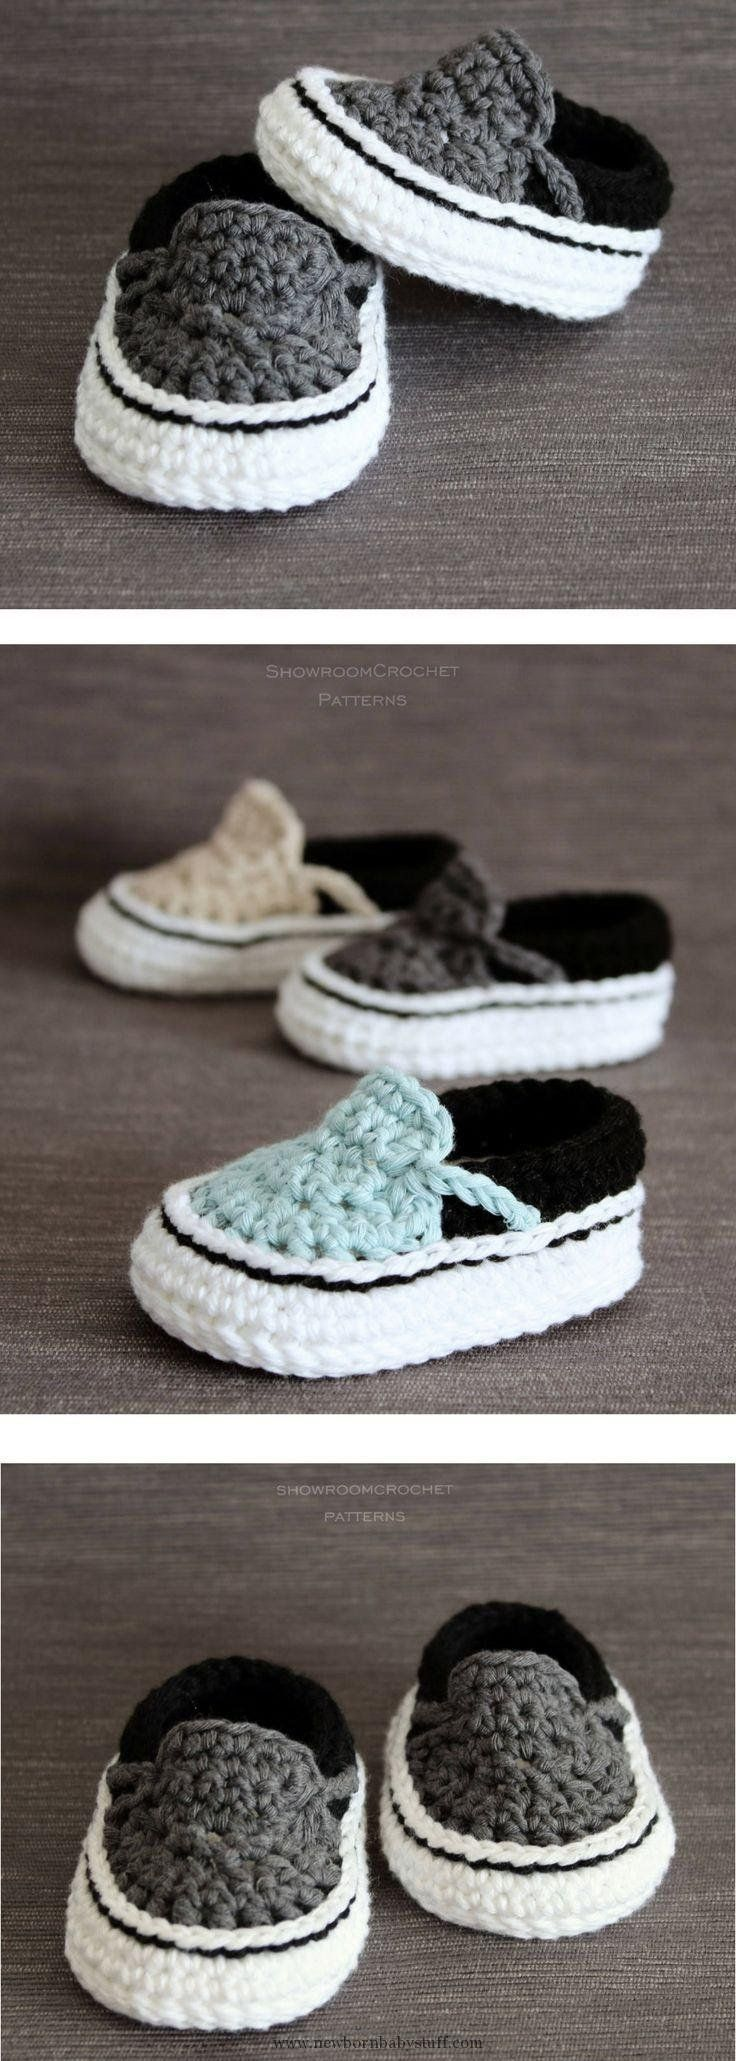 Crochet Child Booties Crochet PATTERN. Vans type child sneakers. Prompt Obtain. Crochet Baby Booties ADORABLE!